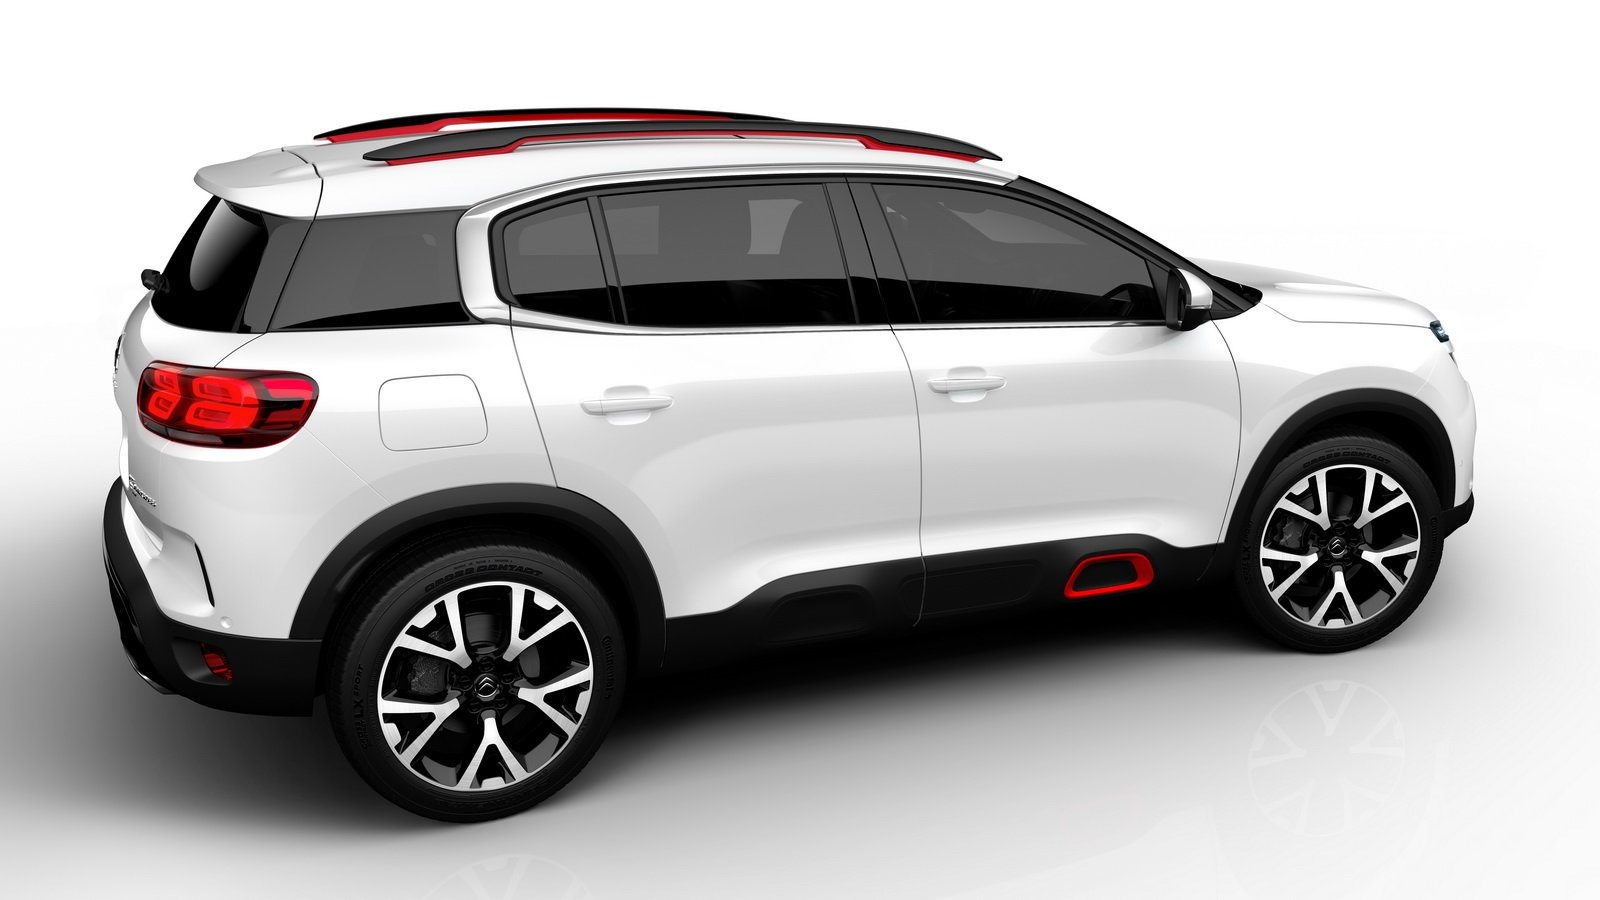 2017 citroen c5 aircross revealed update australian launch under consideration photos 1 of 14. Black Bedroom Furniture Sets. Home Design Ideas